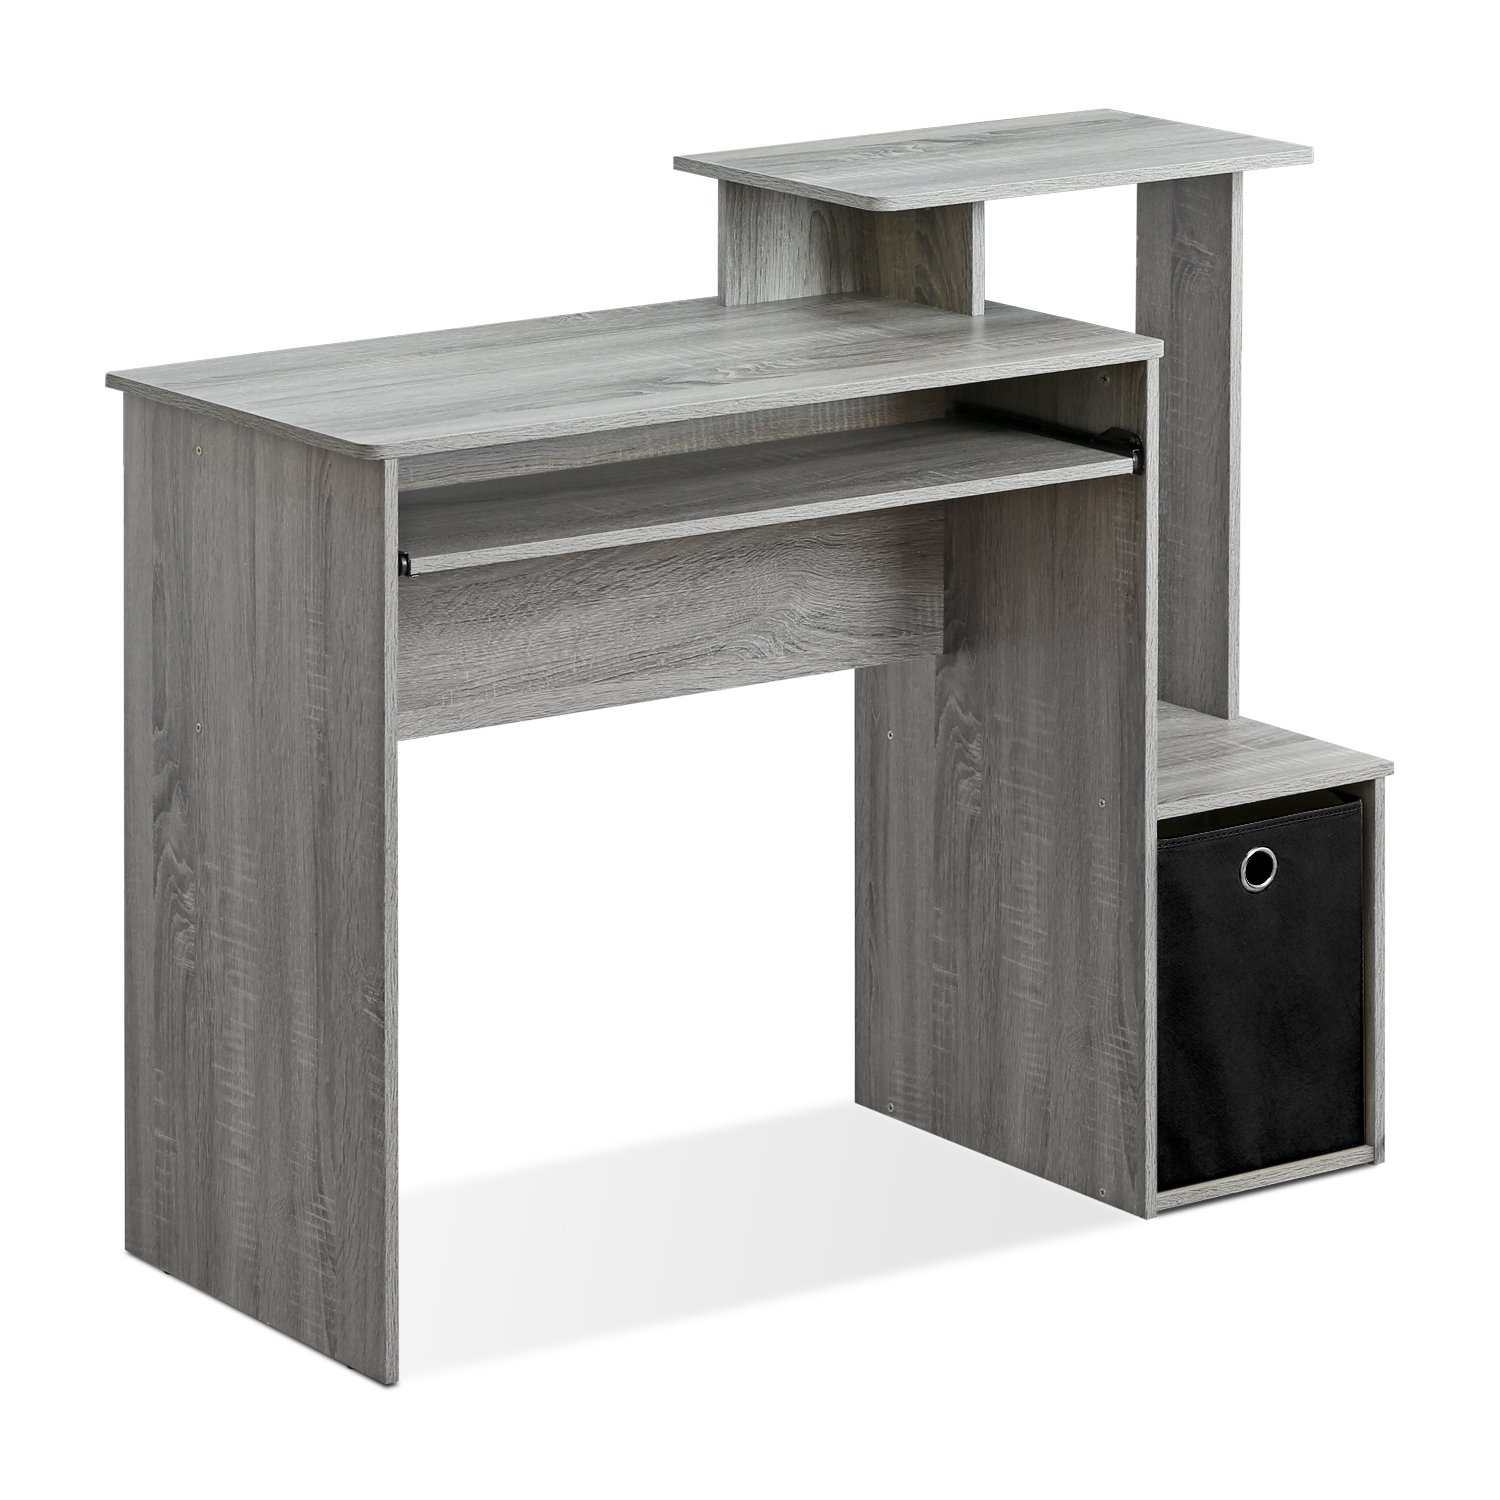 Exceptionnel Amazon.com: Furinno 12095GYW Econ Multipurpose Home Office Computer Writing  Desk With Bin, French Oak Grey, French Oak Grey: Kitchen U0026 Dining